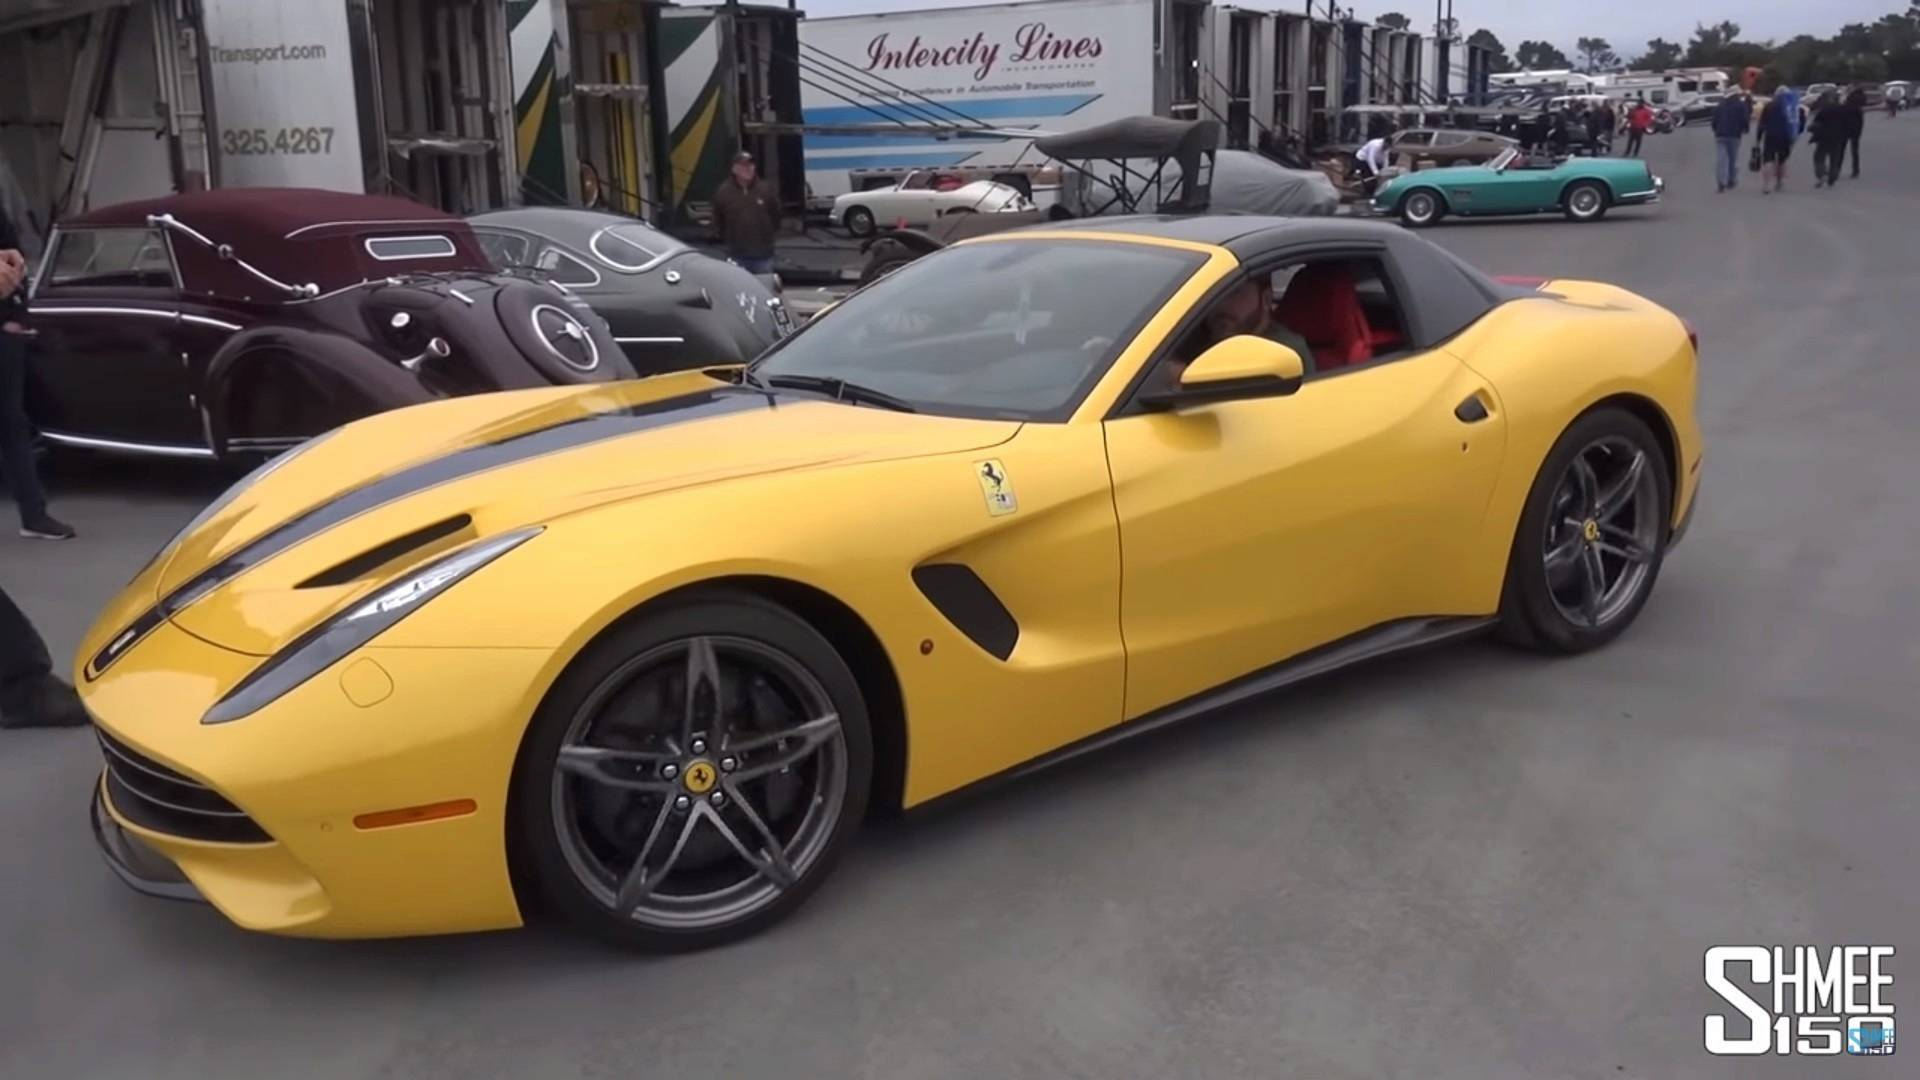 Ferrari 812 Convertible With Folding Hardtop In The Works